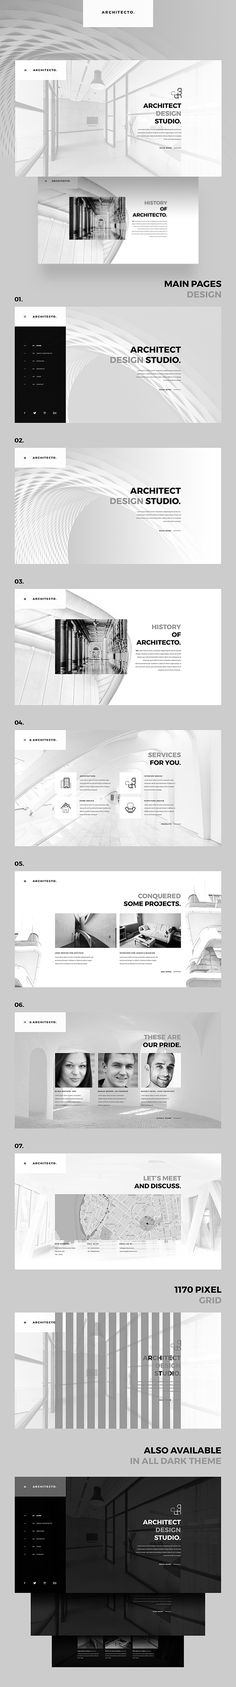 Architecto Architecture Studio PSD Template #interior #interiors #modern • Available here ➝ https://themeforest.net/item/architecto-architecture-studio-psd-template/20722084?ref=pxcr